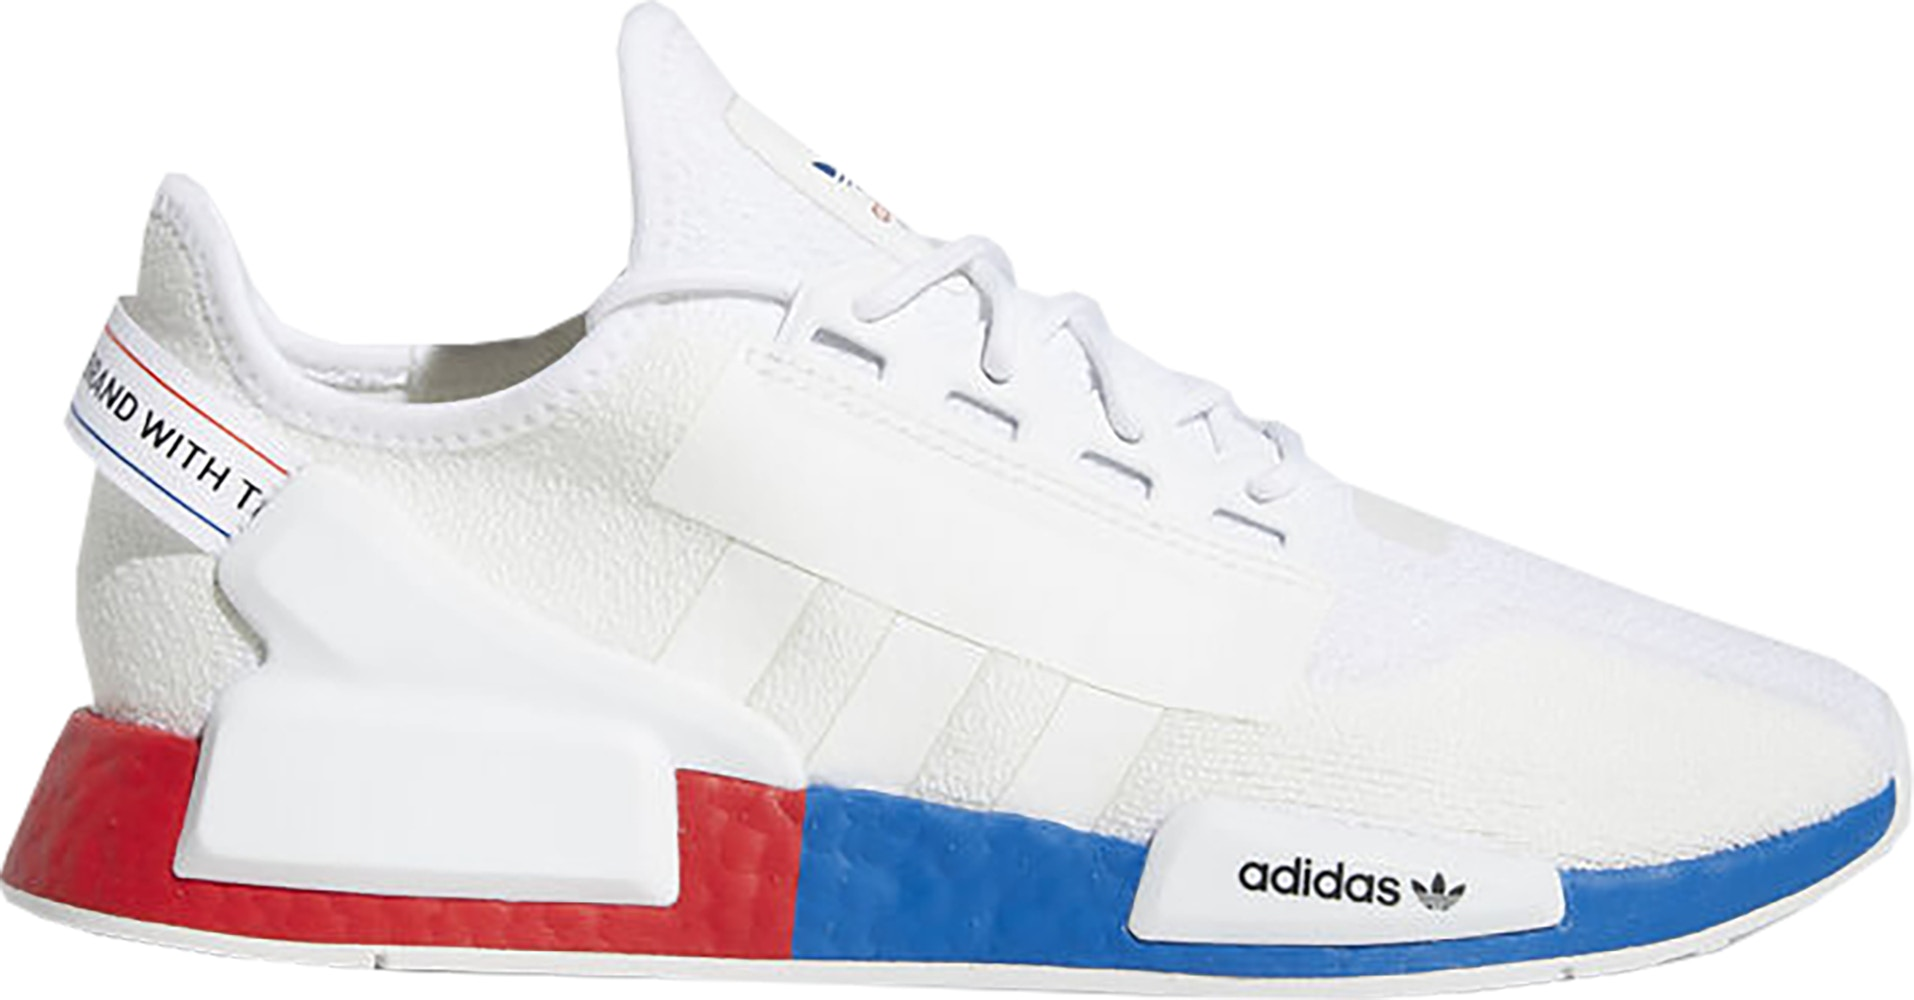 adidas NMD R1 White Red Blue